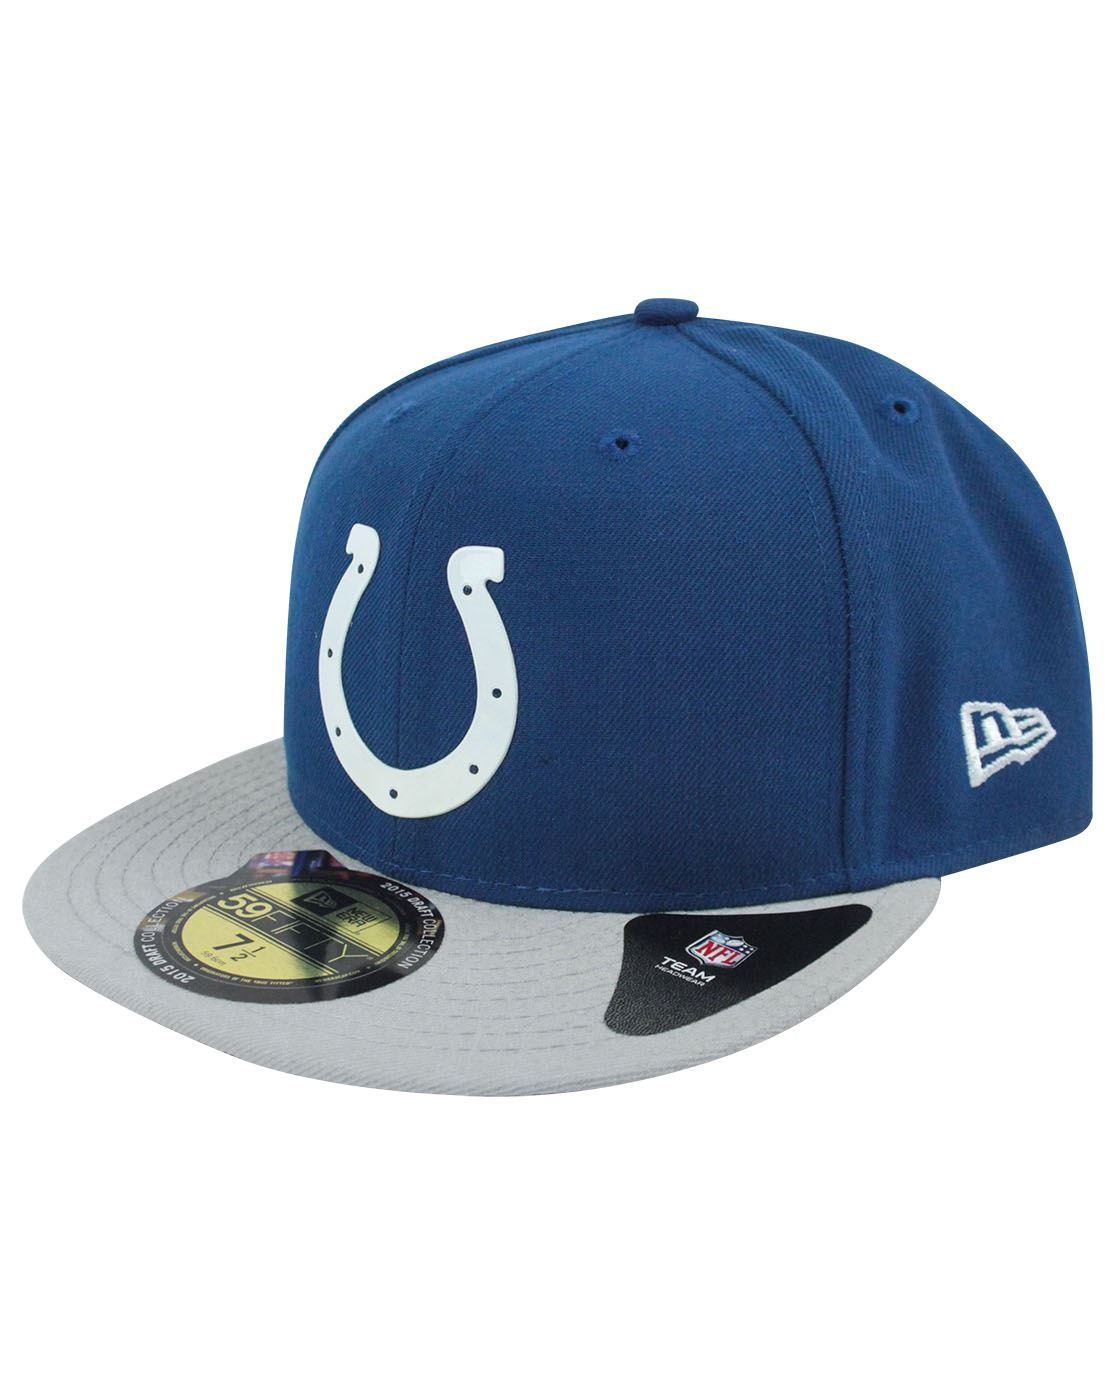 9eb33b8fa81 New Era 59Fifty NFL Indianapolis Colts Draft Cap – Vanilla Underground